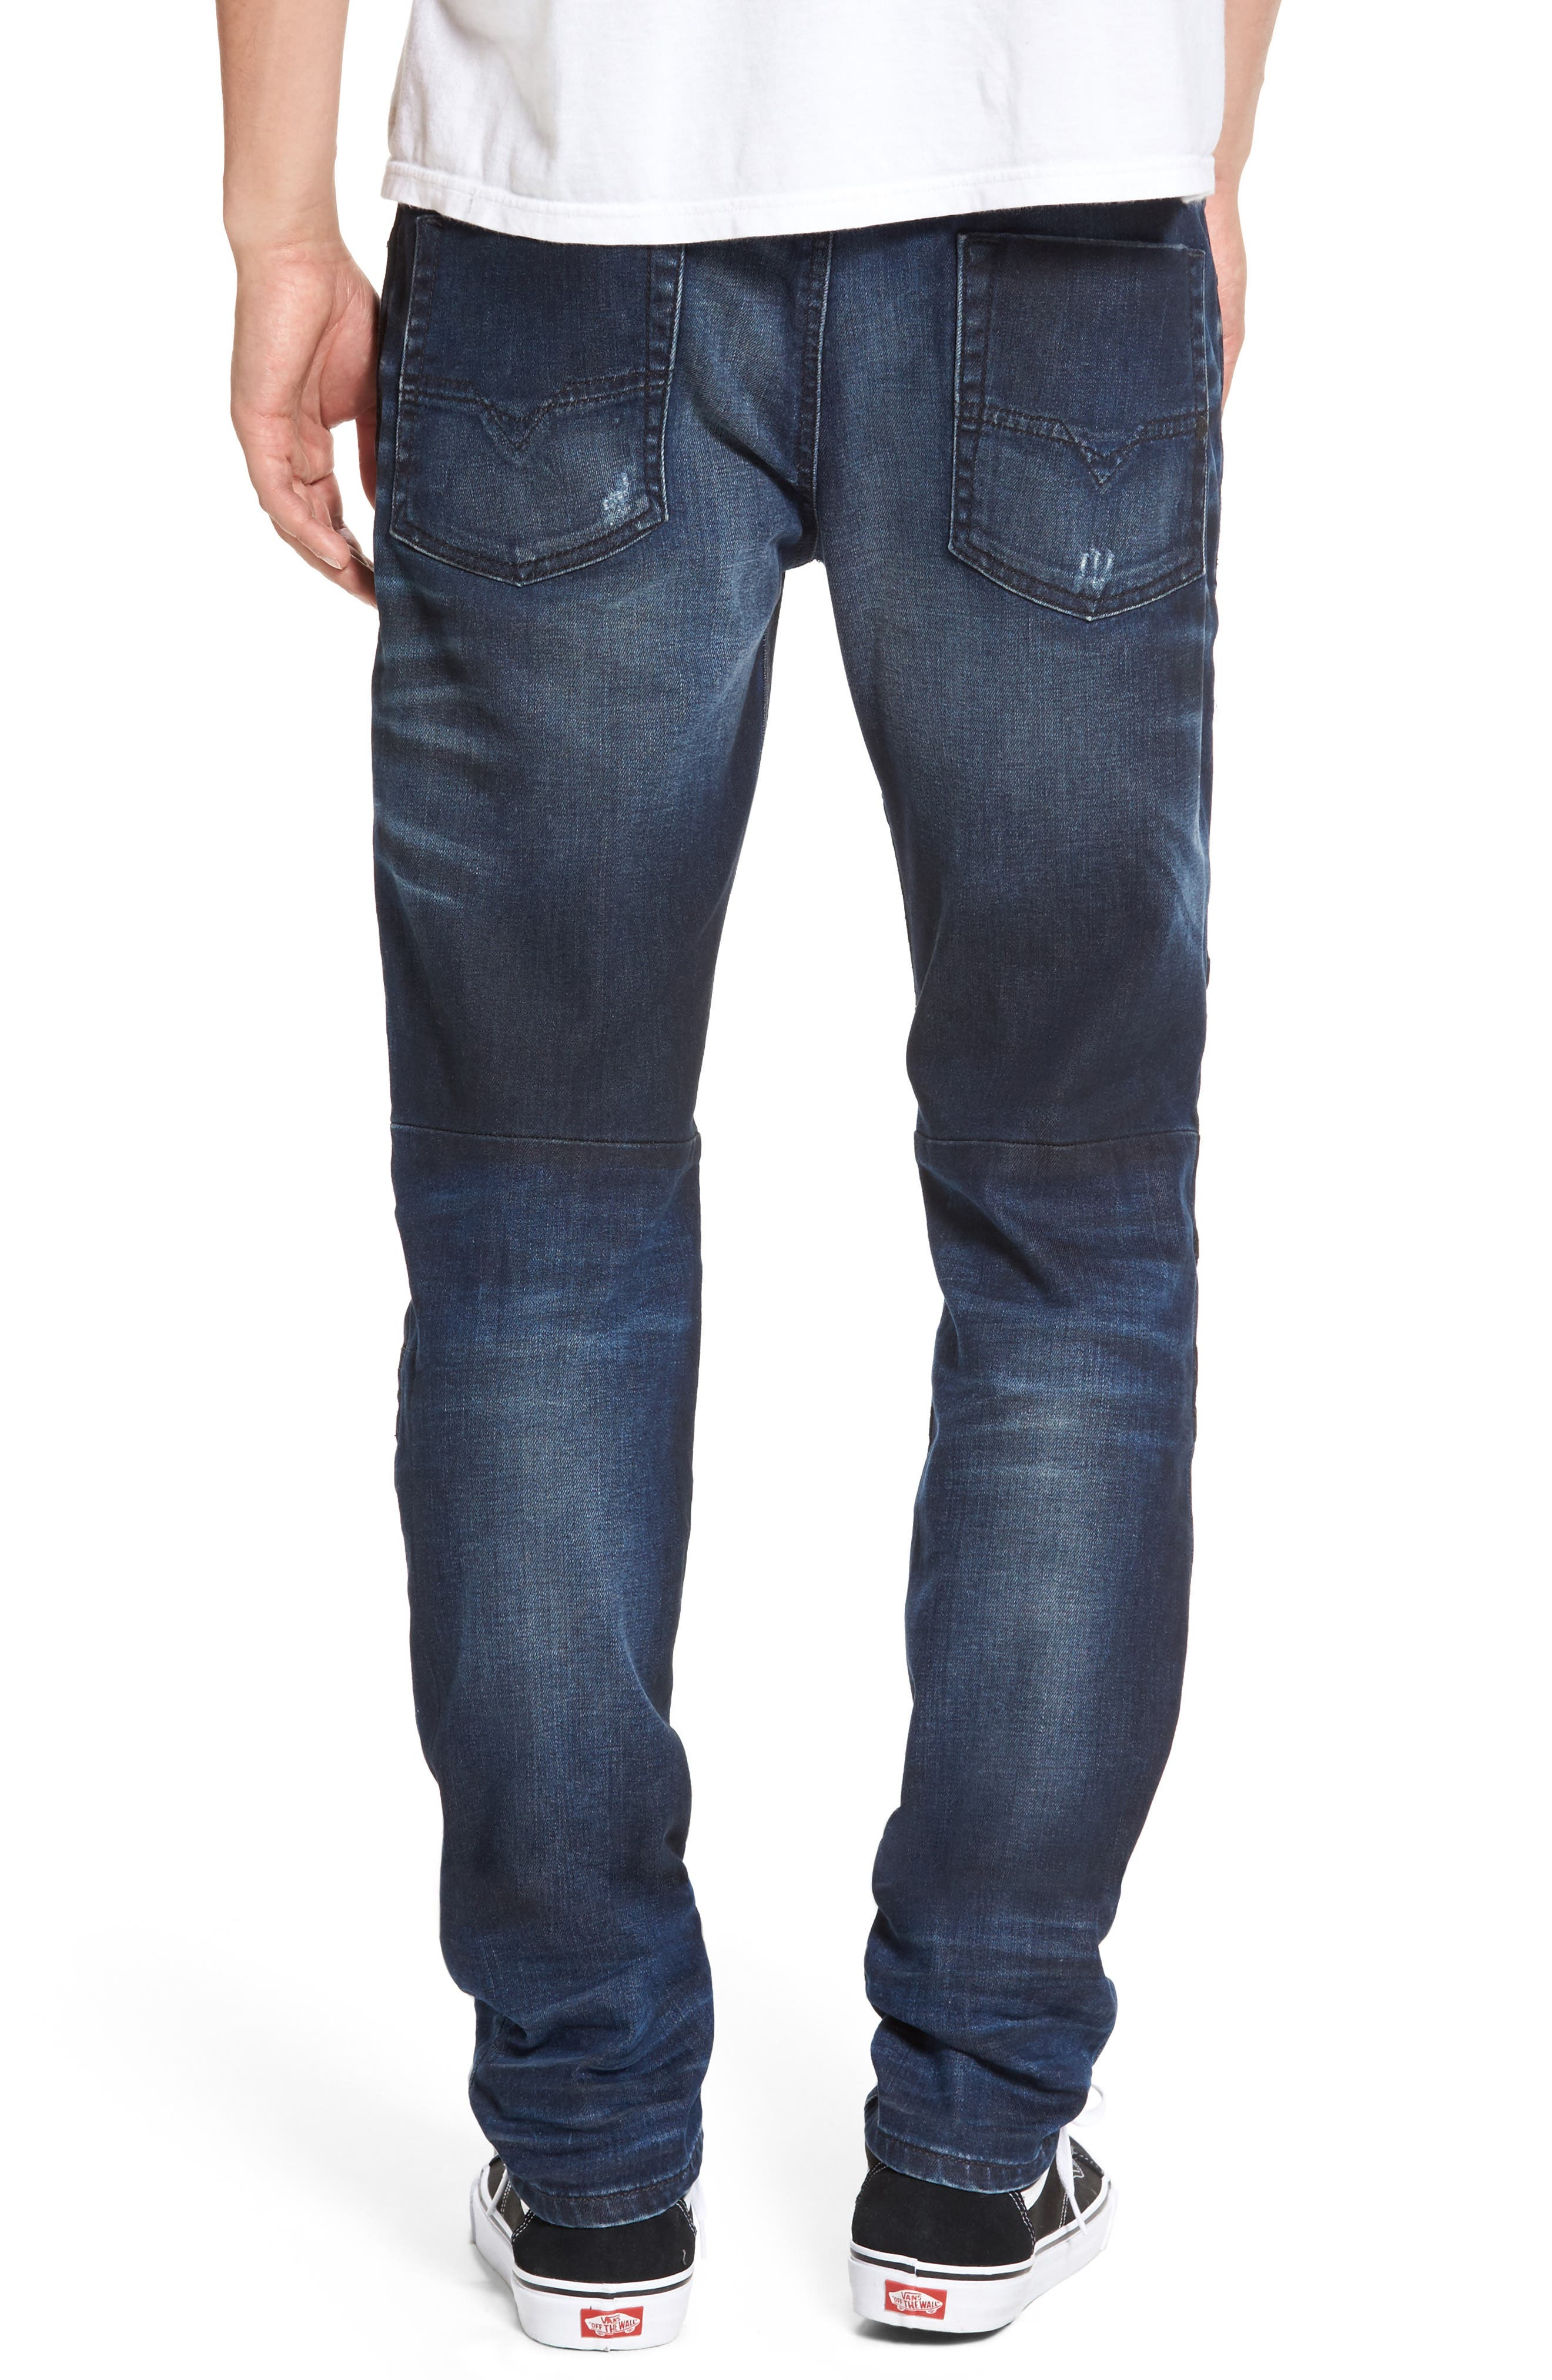 Fourk Skinny Fit Jeans,                             Alternate thumbnail 2, color,                             400